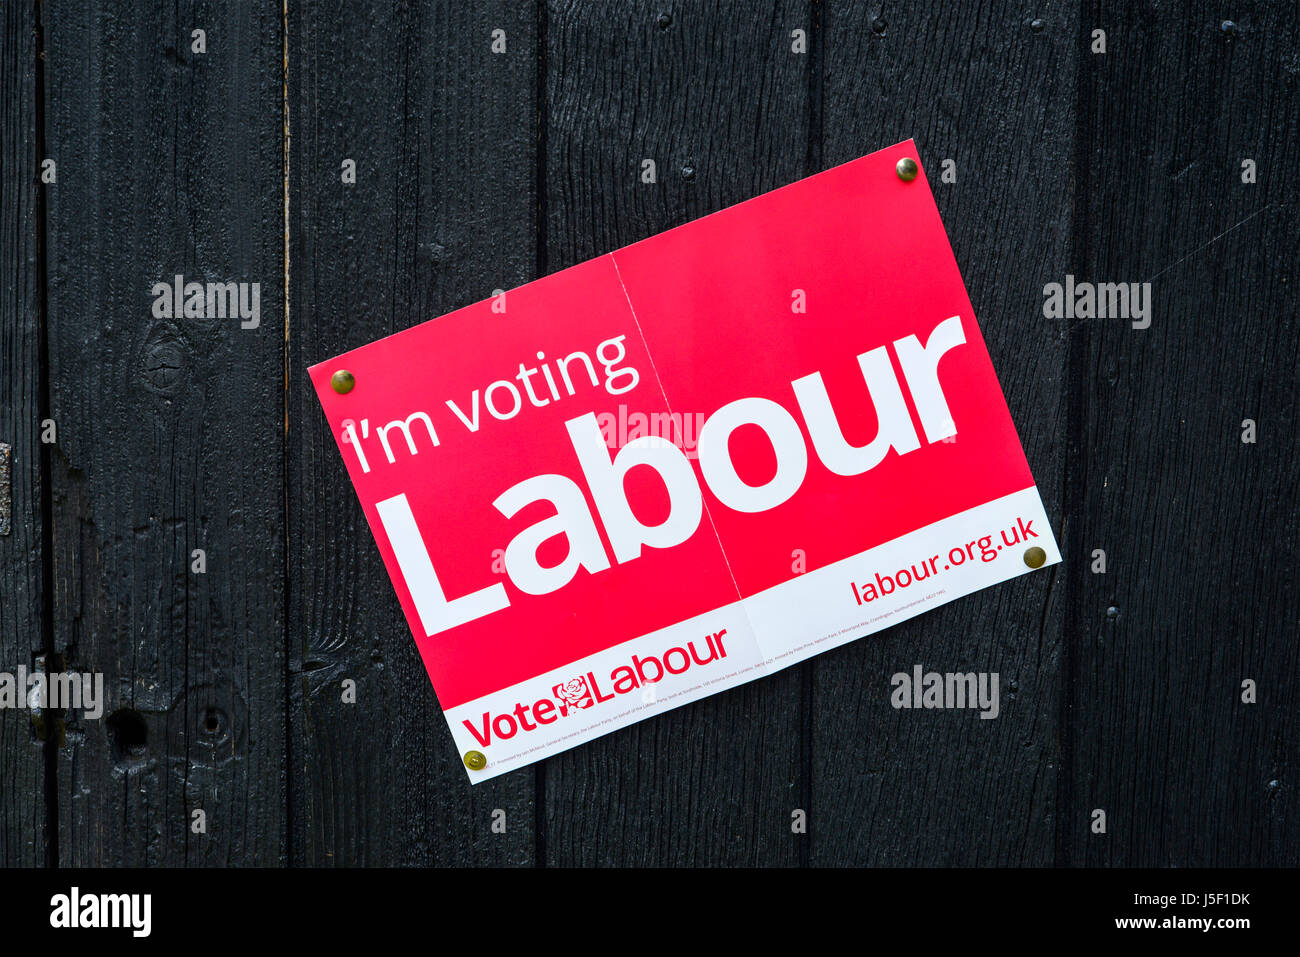 Labour Party Poster Stock Photos & Labour Party Poster ...